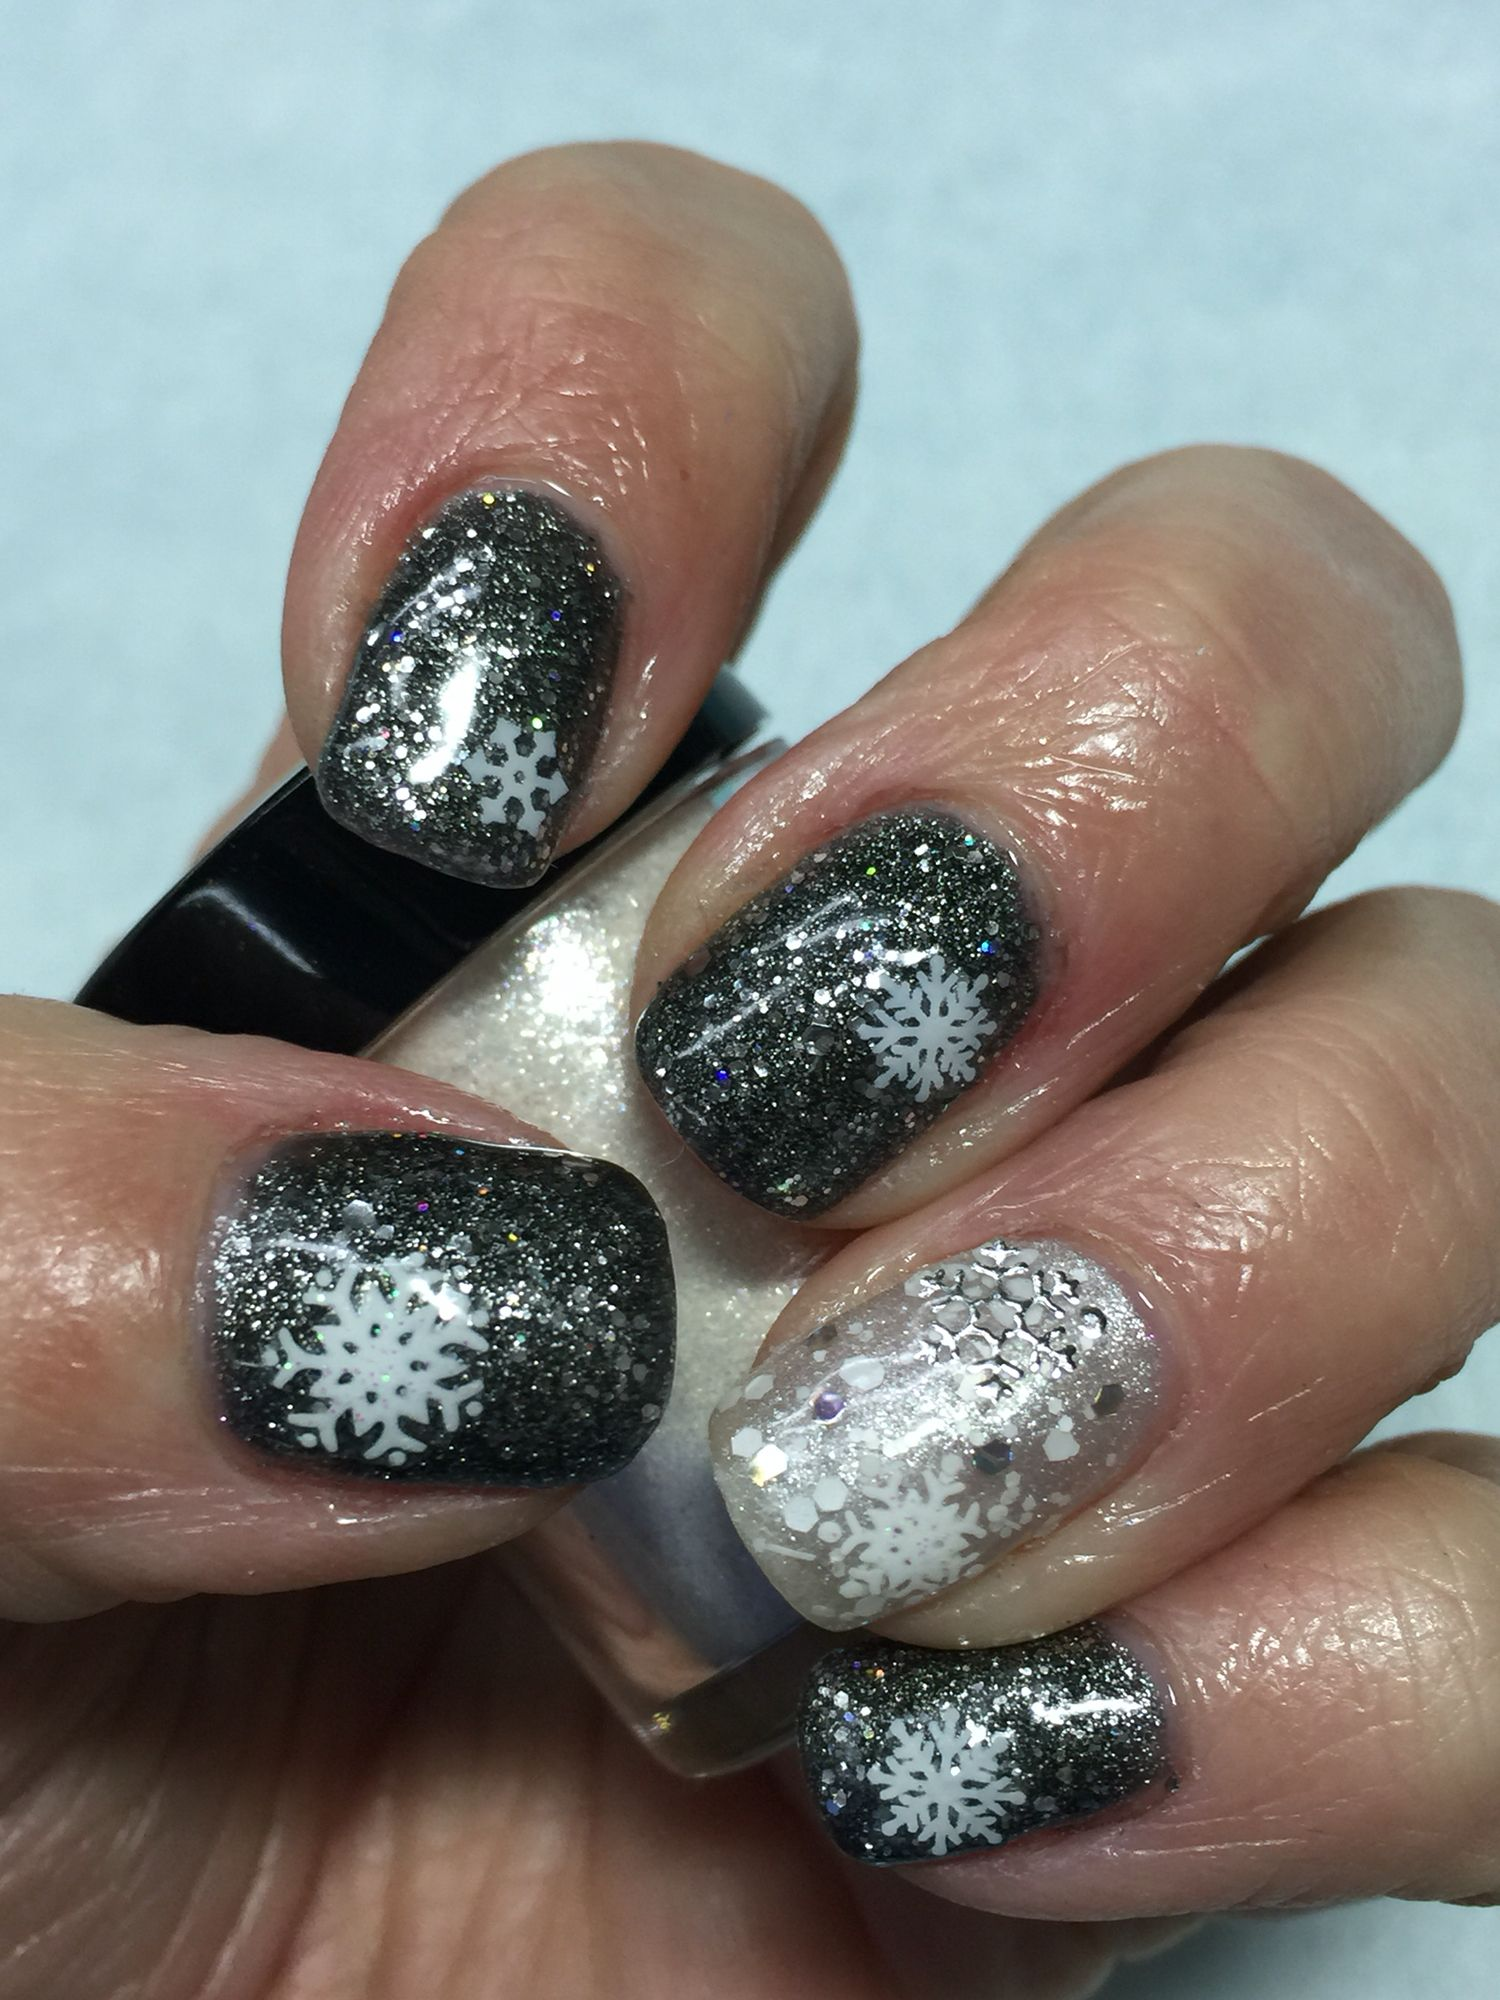 Silver Glitter over Black with Snowflakes, Winter Nails, OPI Ds ...